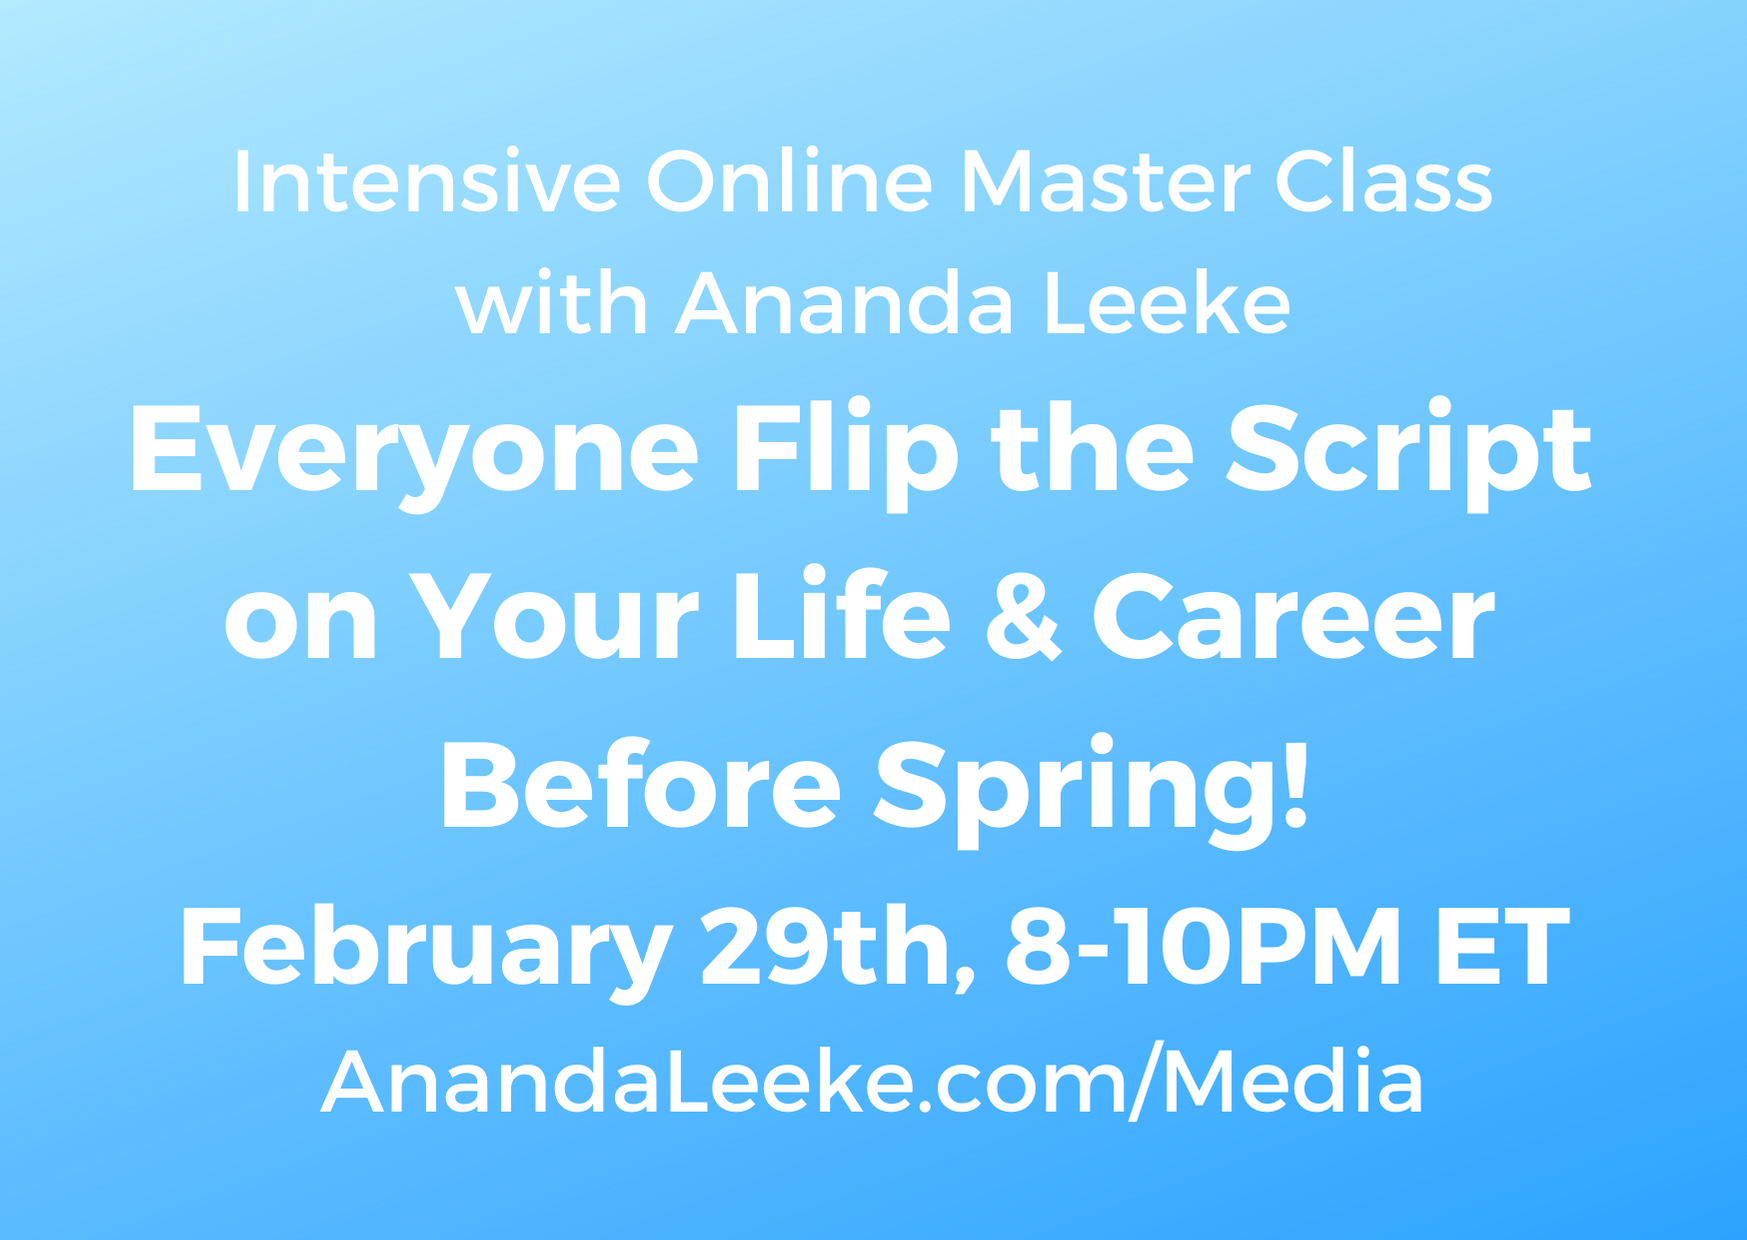 Intensive Online Master Class for Everyone (2)